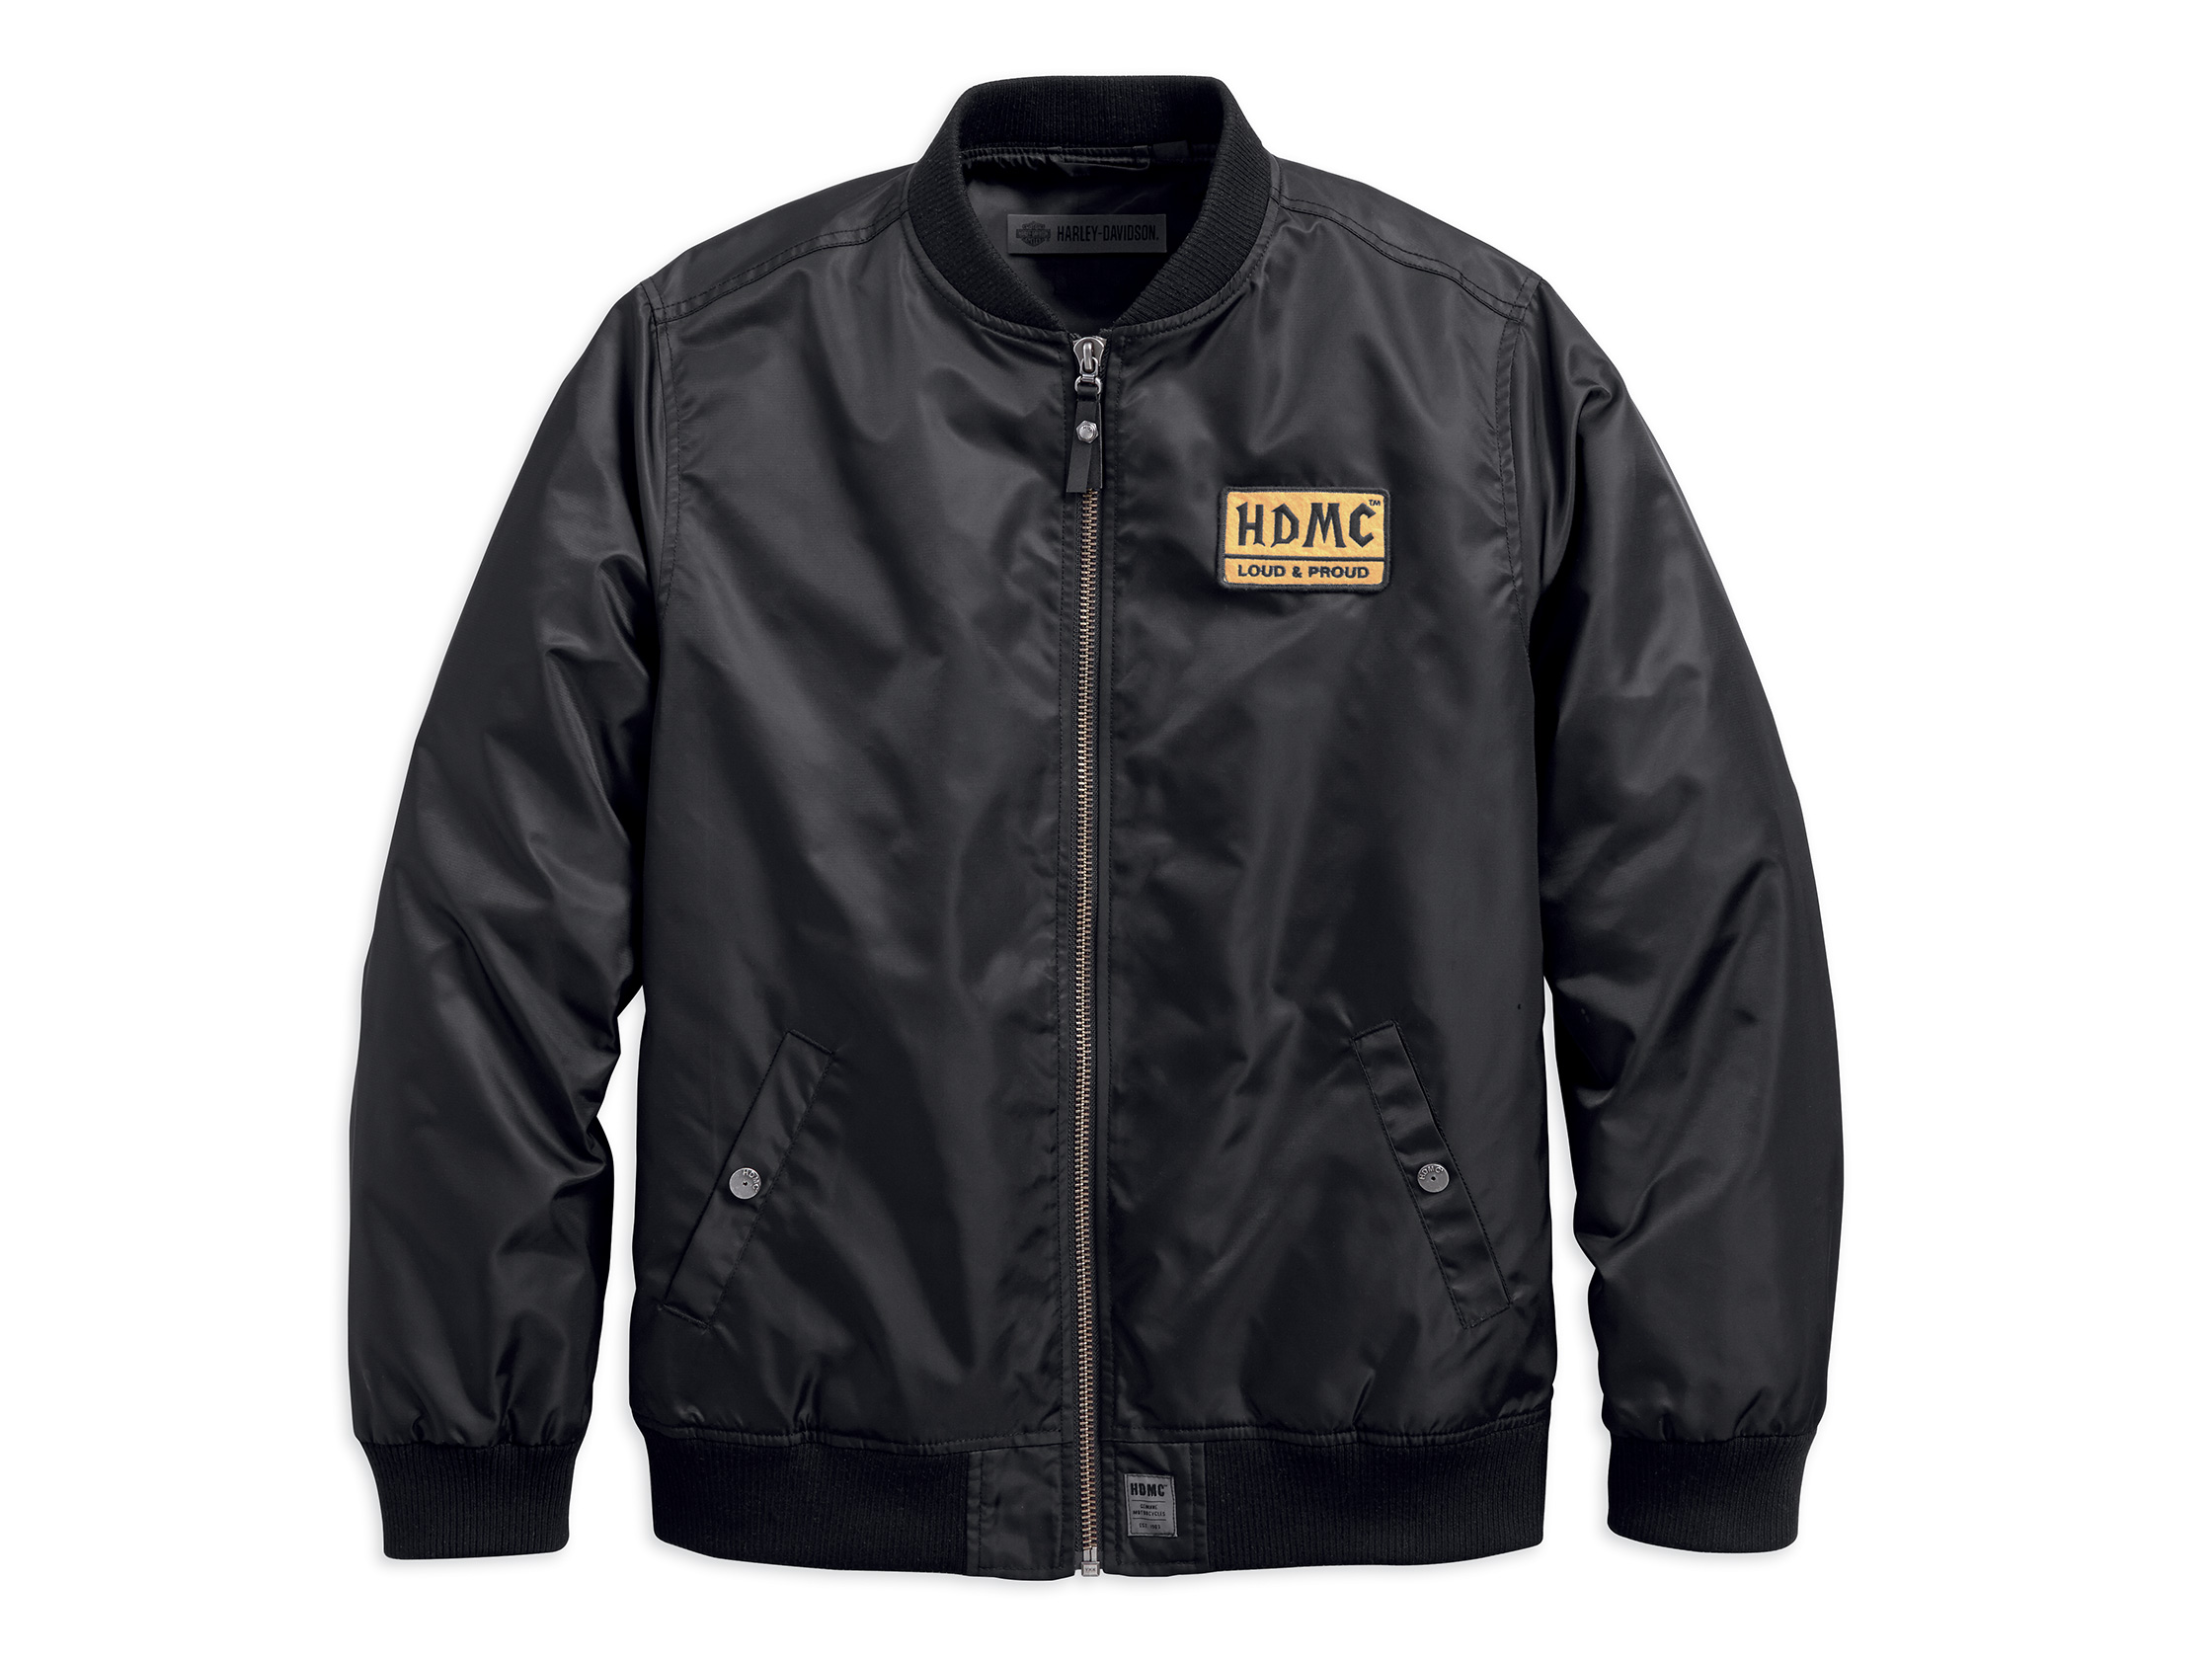 Harley-Davidson HDMC Patch Slim Fit Bomber Jacket